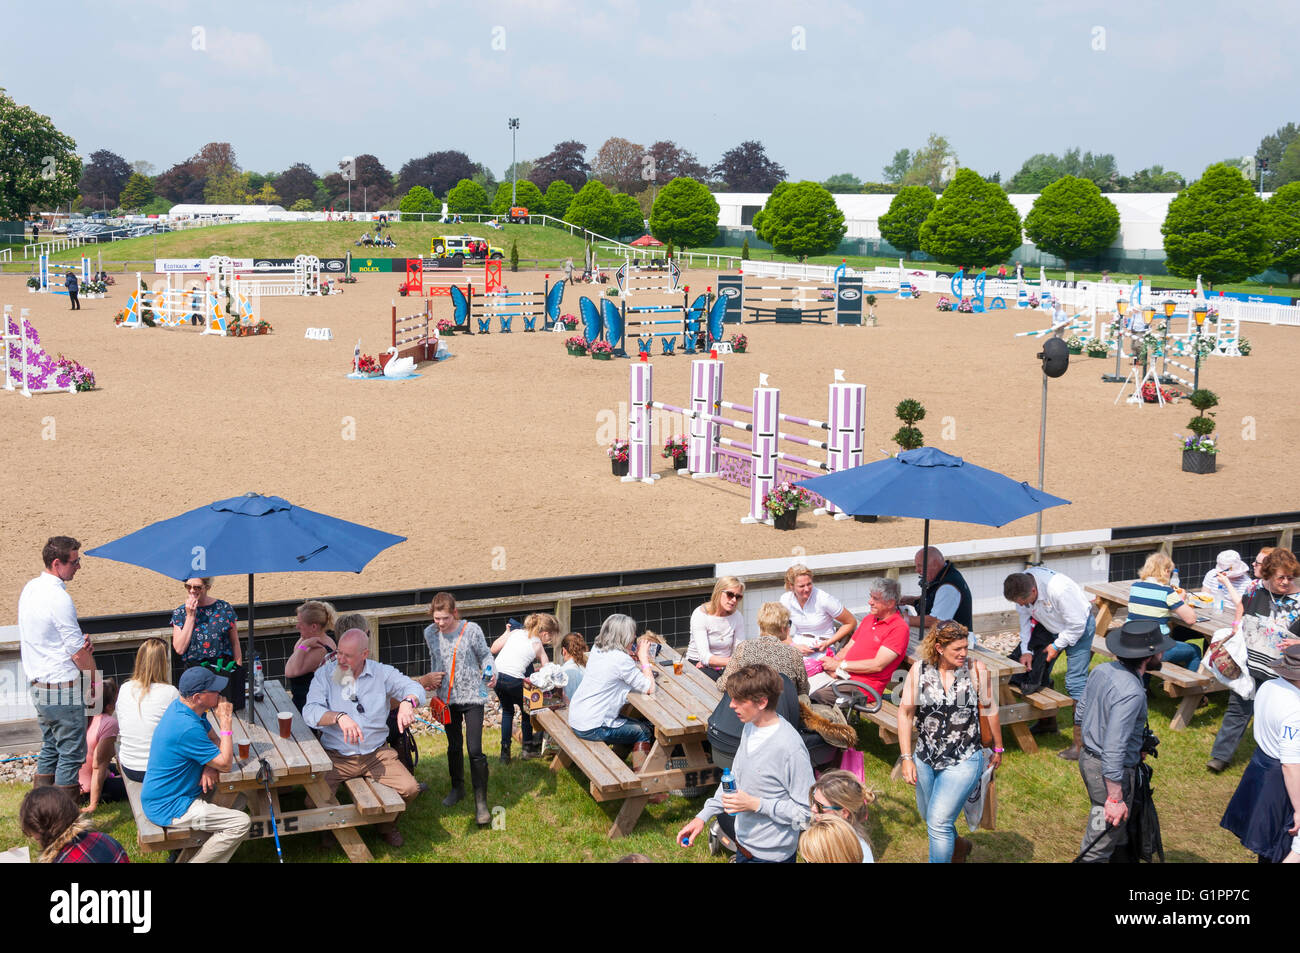 Frogmore Show Jumping Arena presso il Royal Windsor Horse Show, Home Park, Windsor, Berkshire, Inghilterra, Regno Immagini Stock